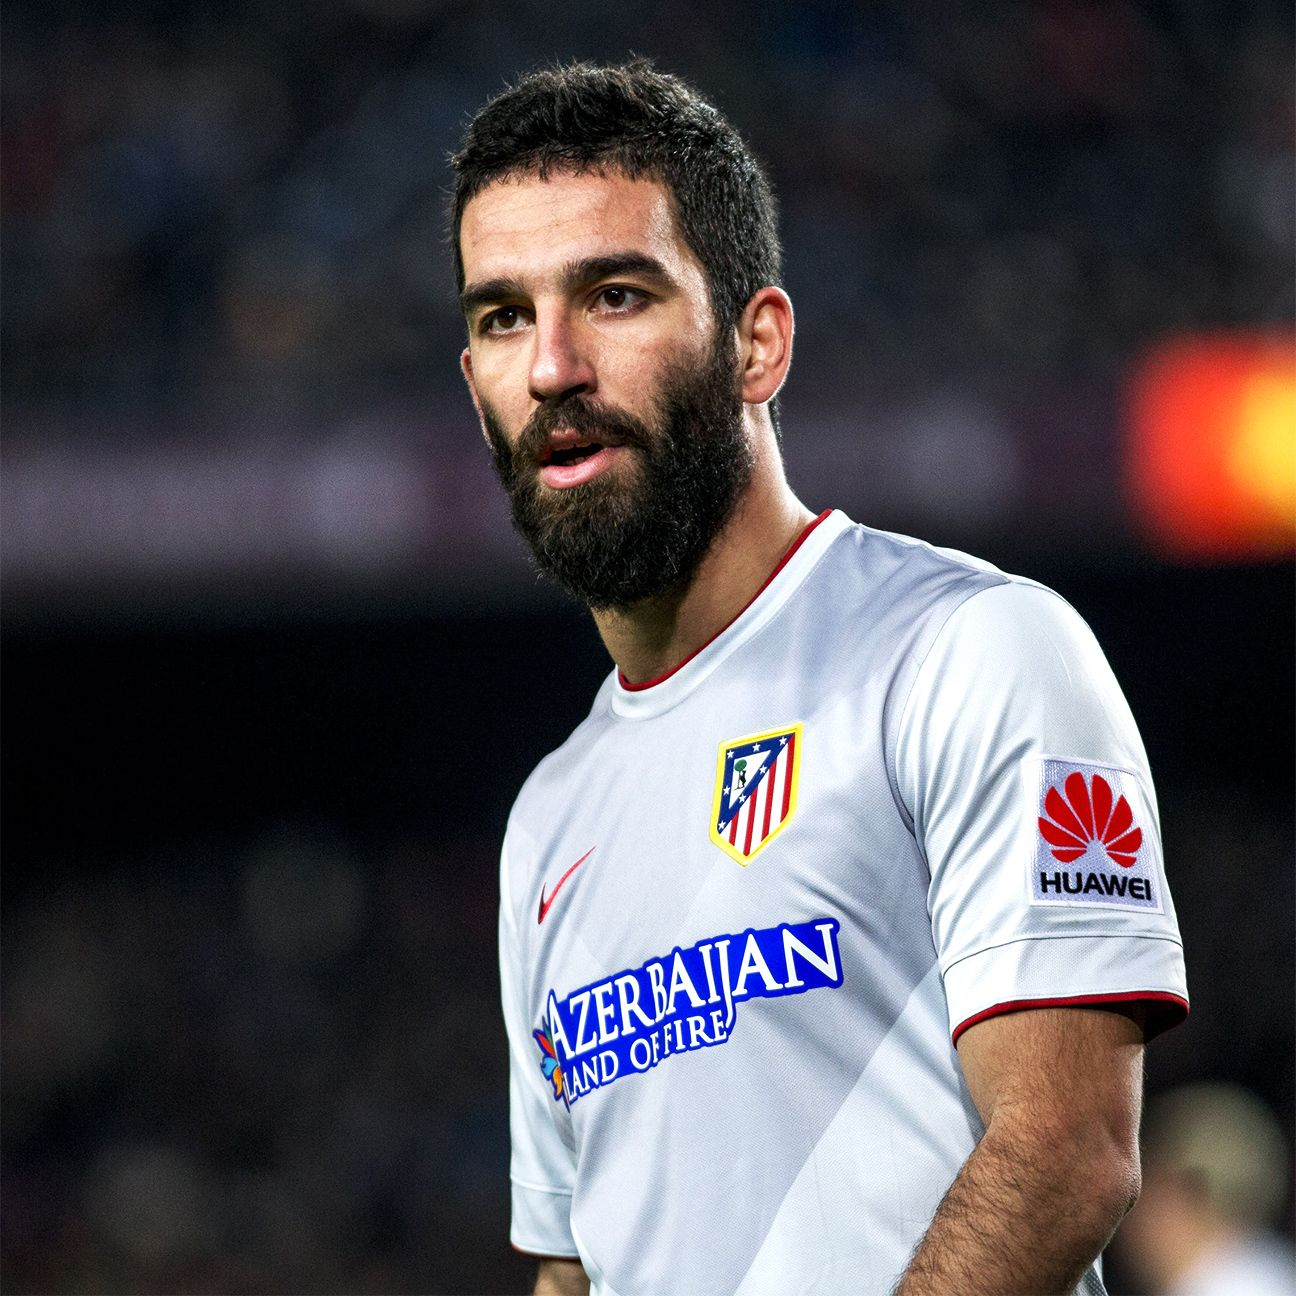 Arda Turan made 46 total appearances for Atletico Madrid in 2014-15.